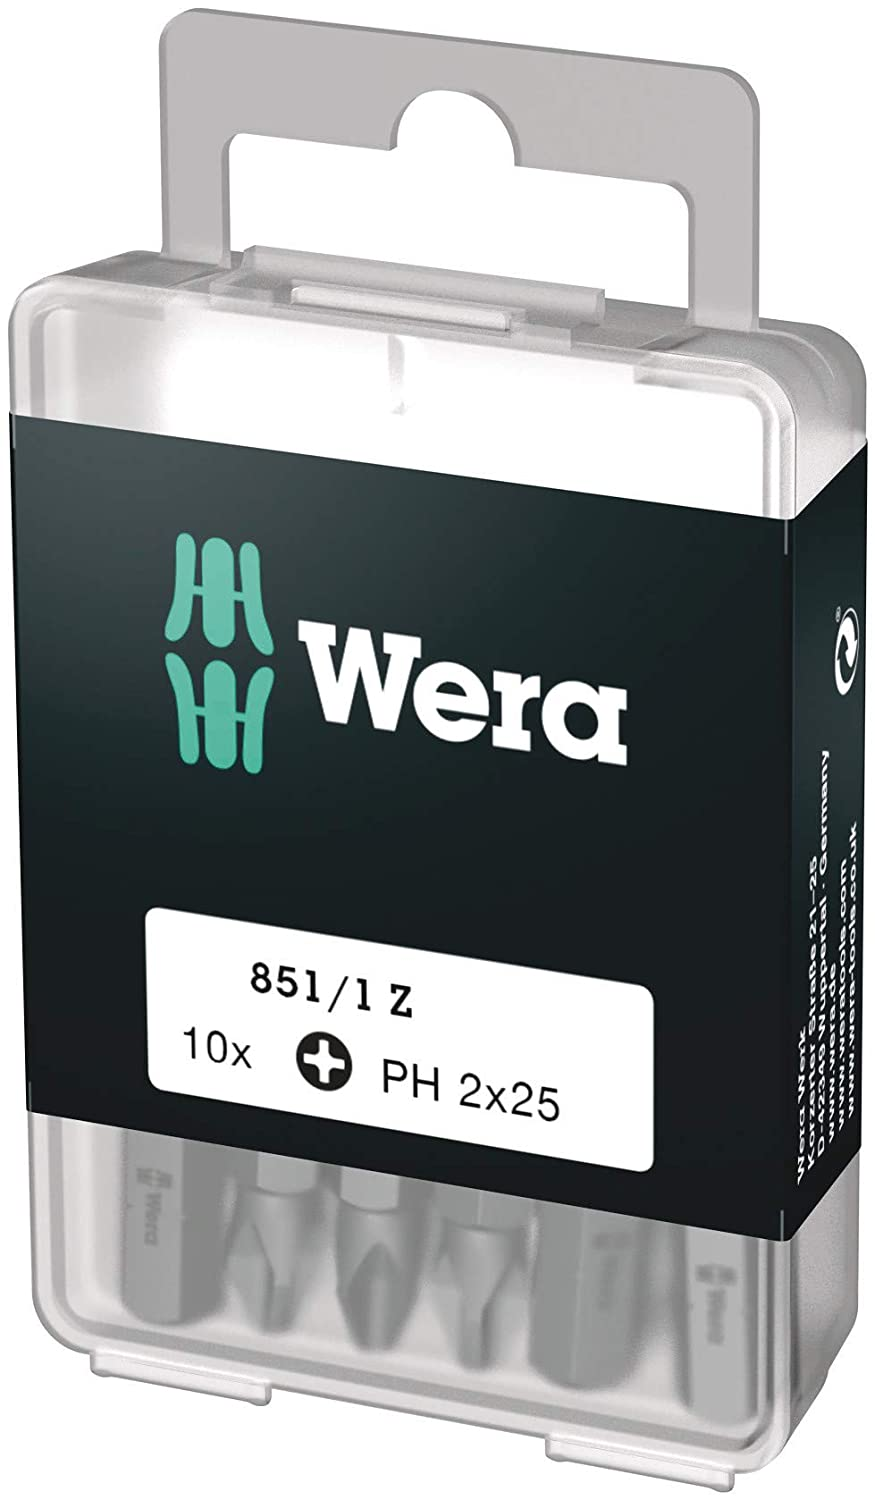 Wera 05072401001 Phillips Extra-Tough Bits 851/1 Z PH2 x 25 mm, Pack of 10